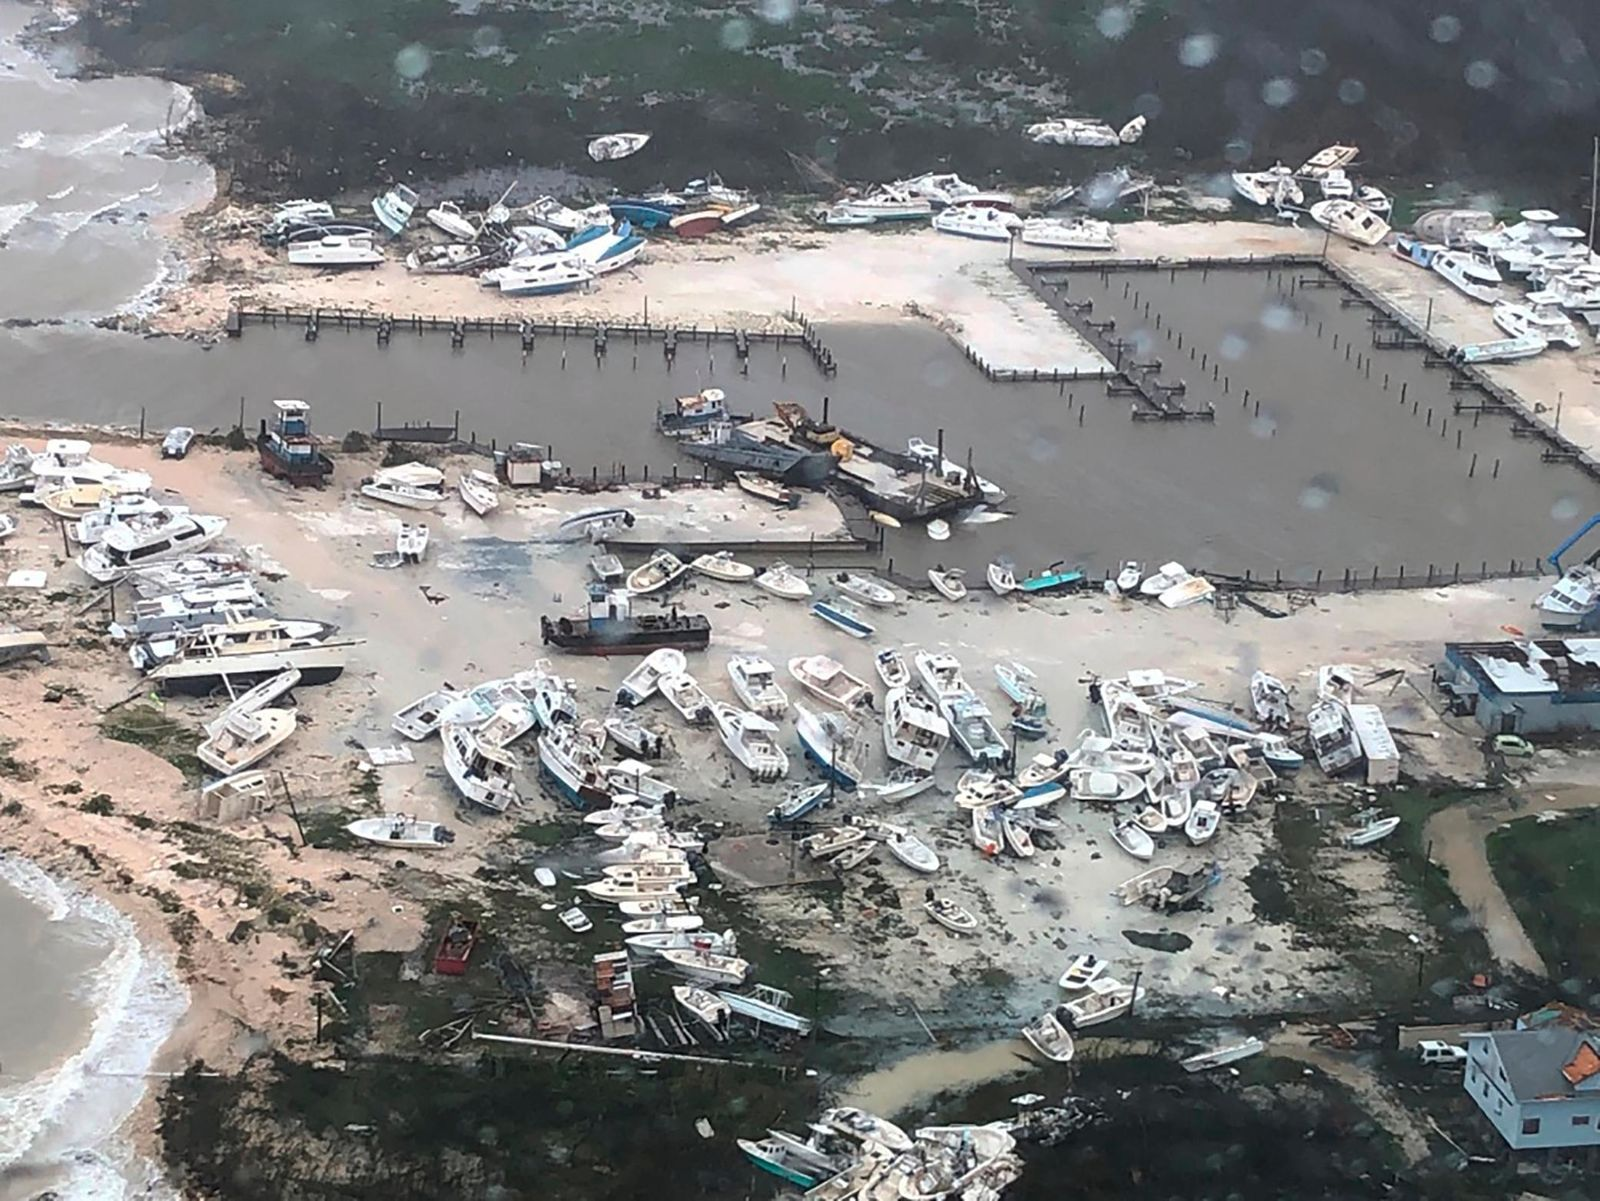 In this Monday, Sept. 2, 2019 photo released by the U.S. Coast Guard Station Clearwater, boats litter the area around marina in the Bahamas after they were tossed around by Hurricane Dorian.{ } (U.S. Coast Guard Station Clearwater via AP)